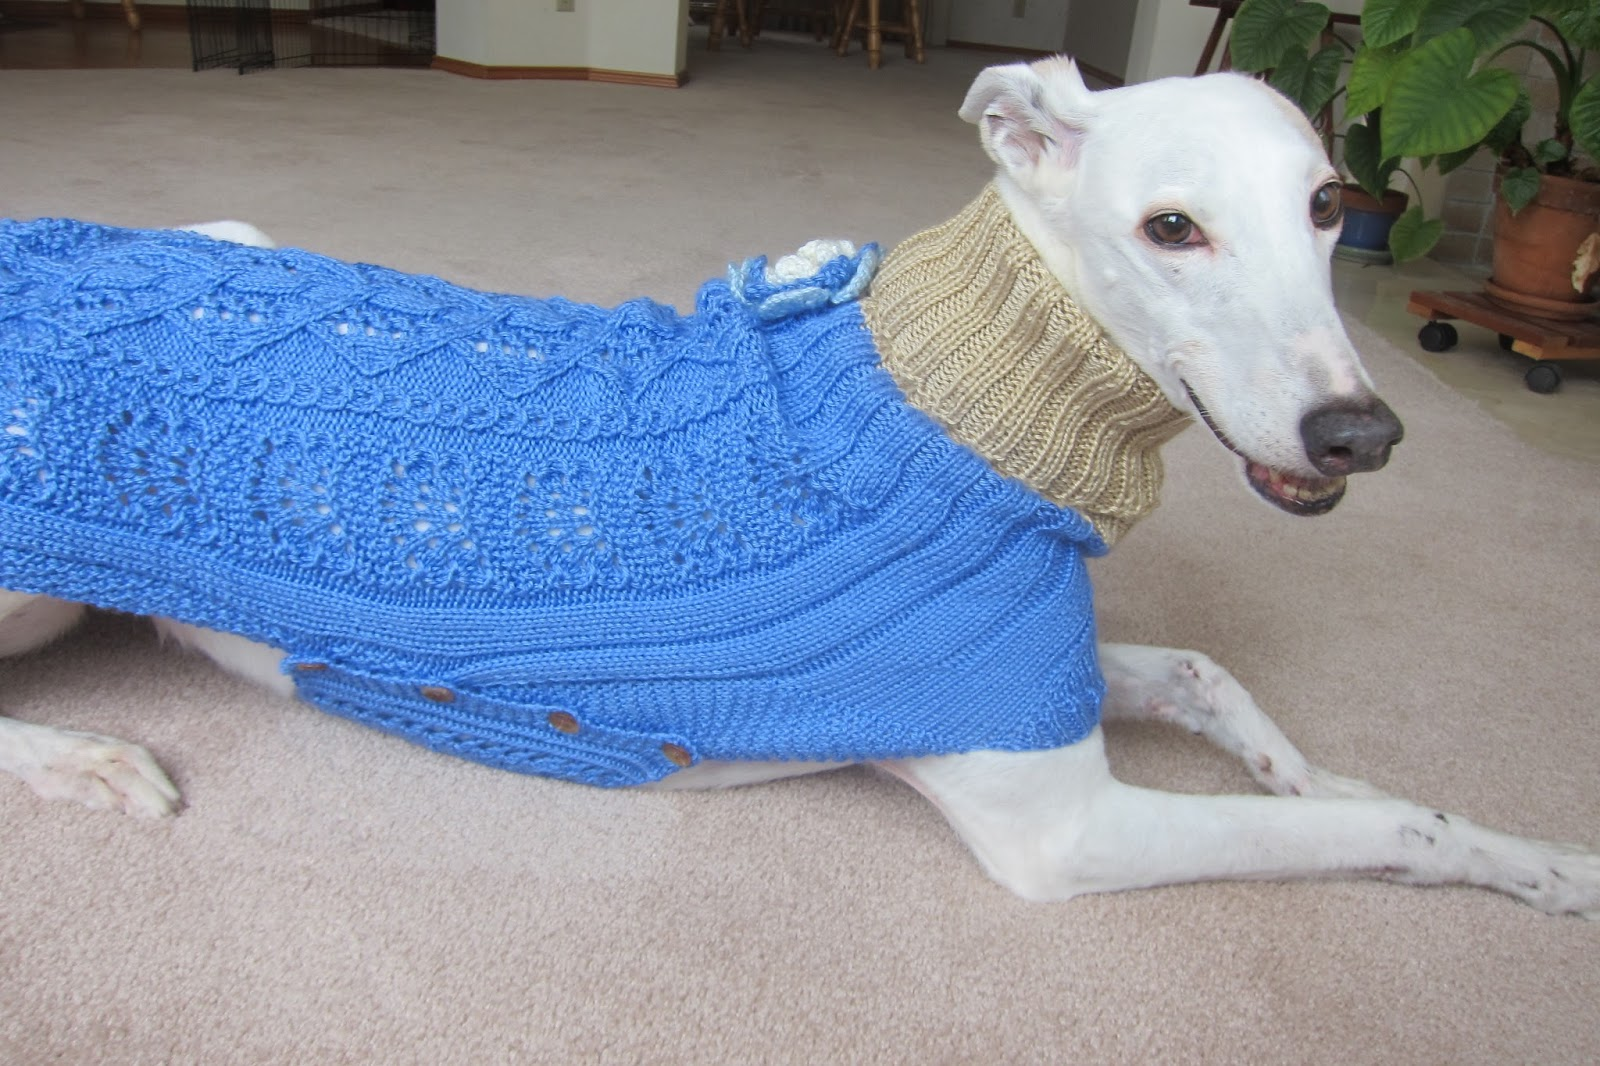 Knitting Patterns For Greyhound Sweaters : Greyhound Knit Sweaters: Sky blue sweater for a girl dog